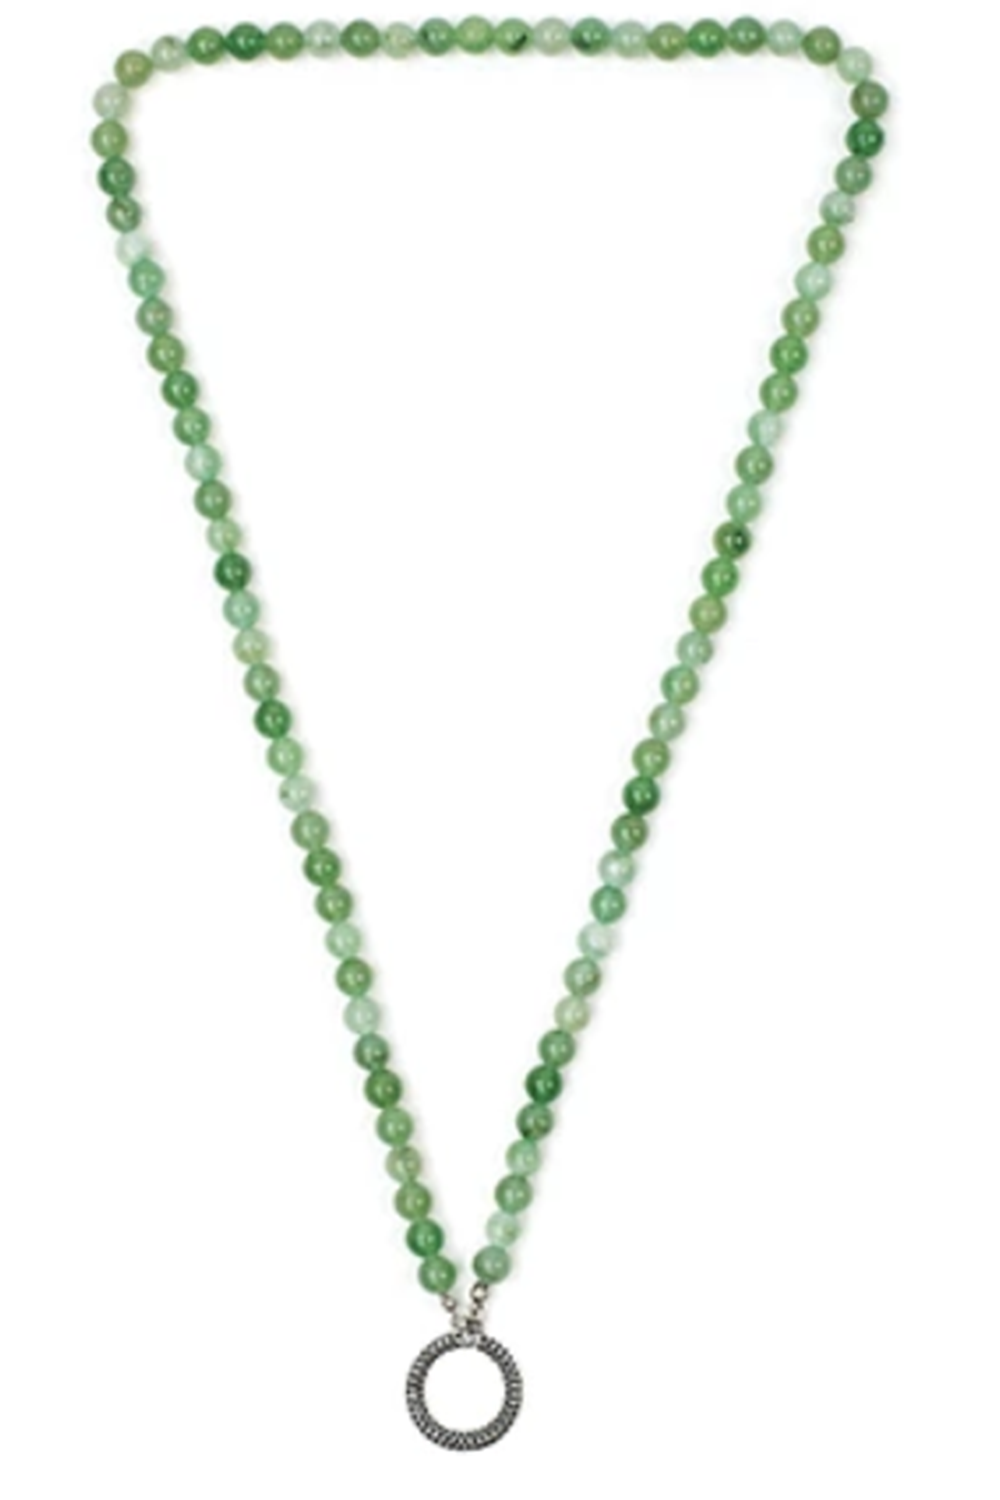 Beaded Reading Glasses Cord - Jade